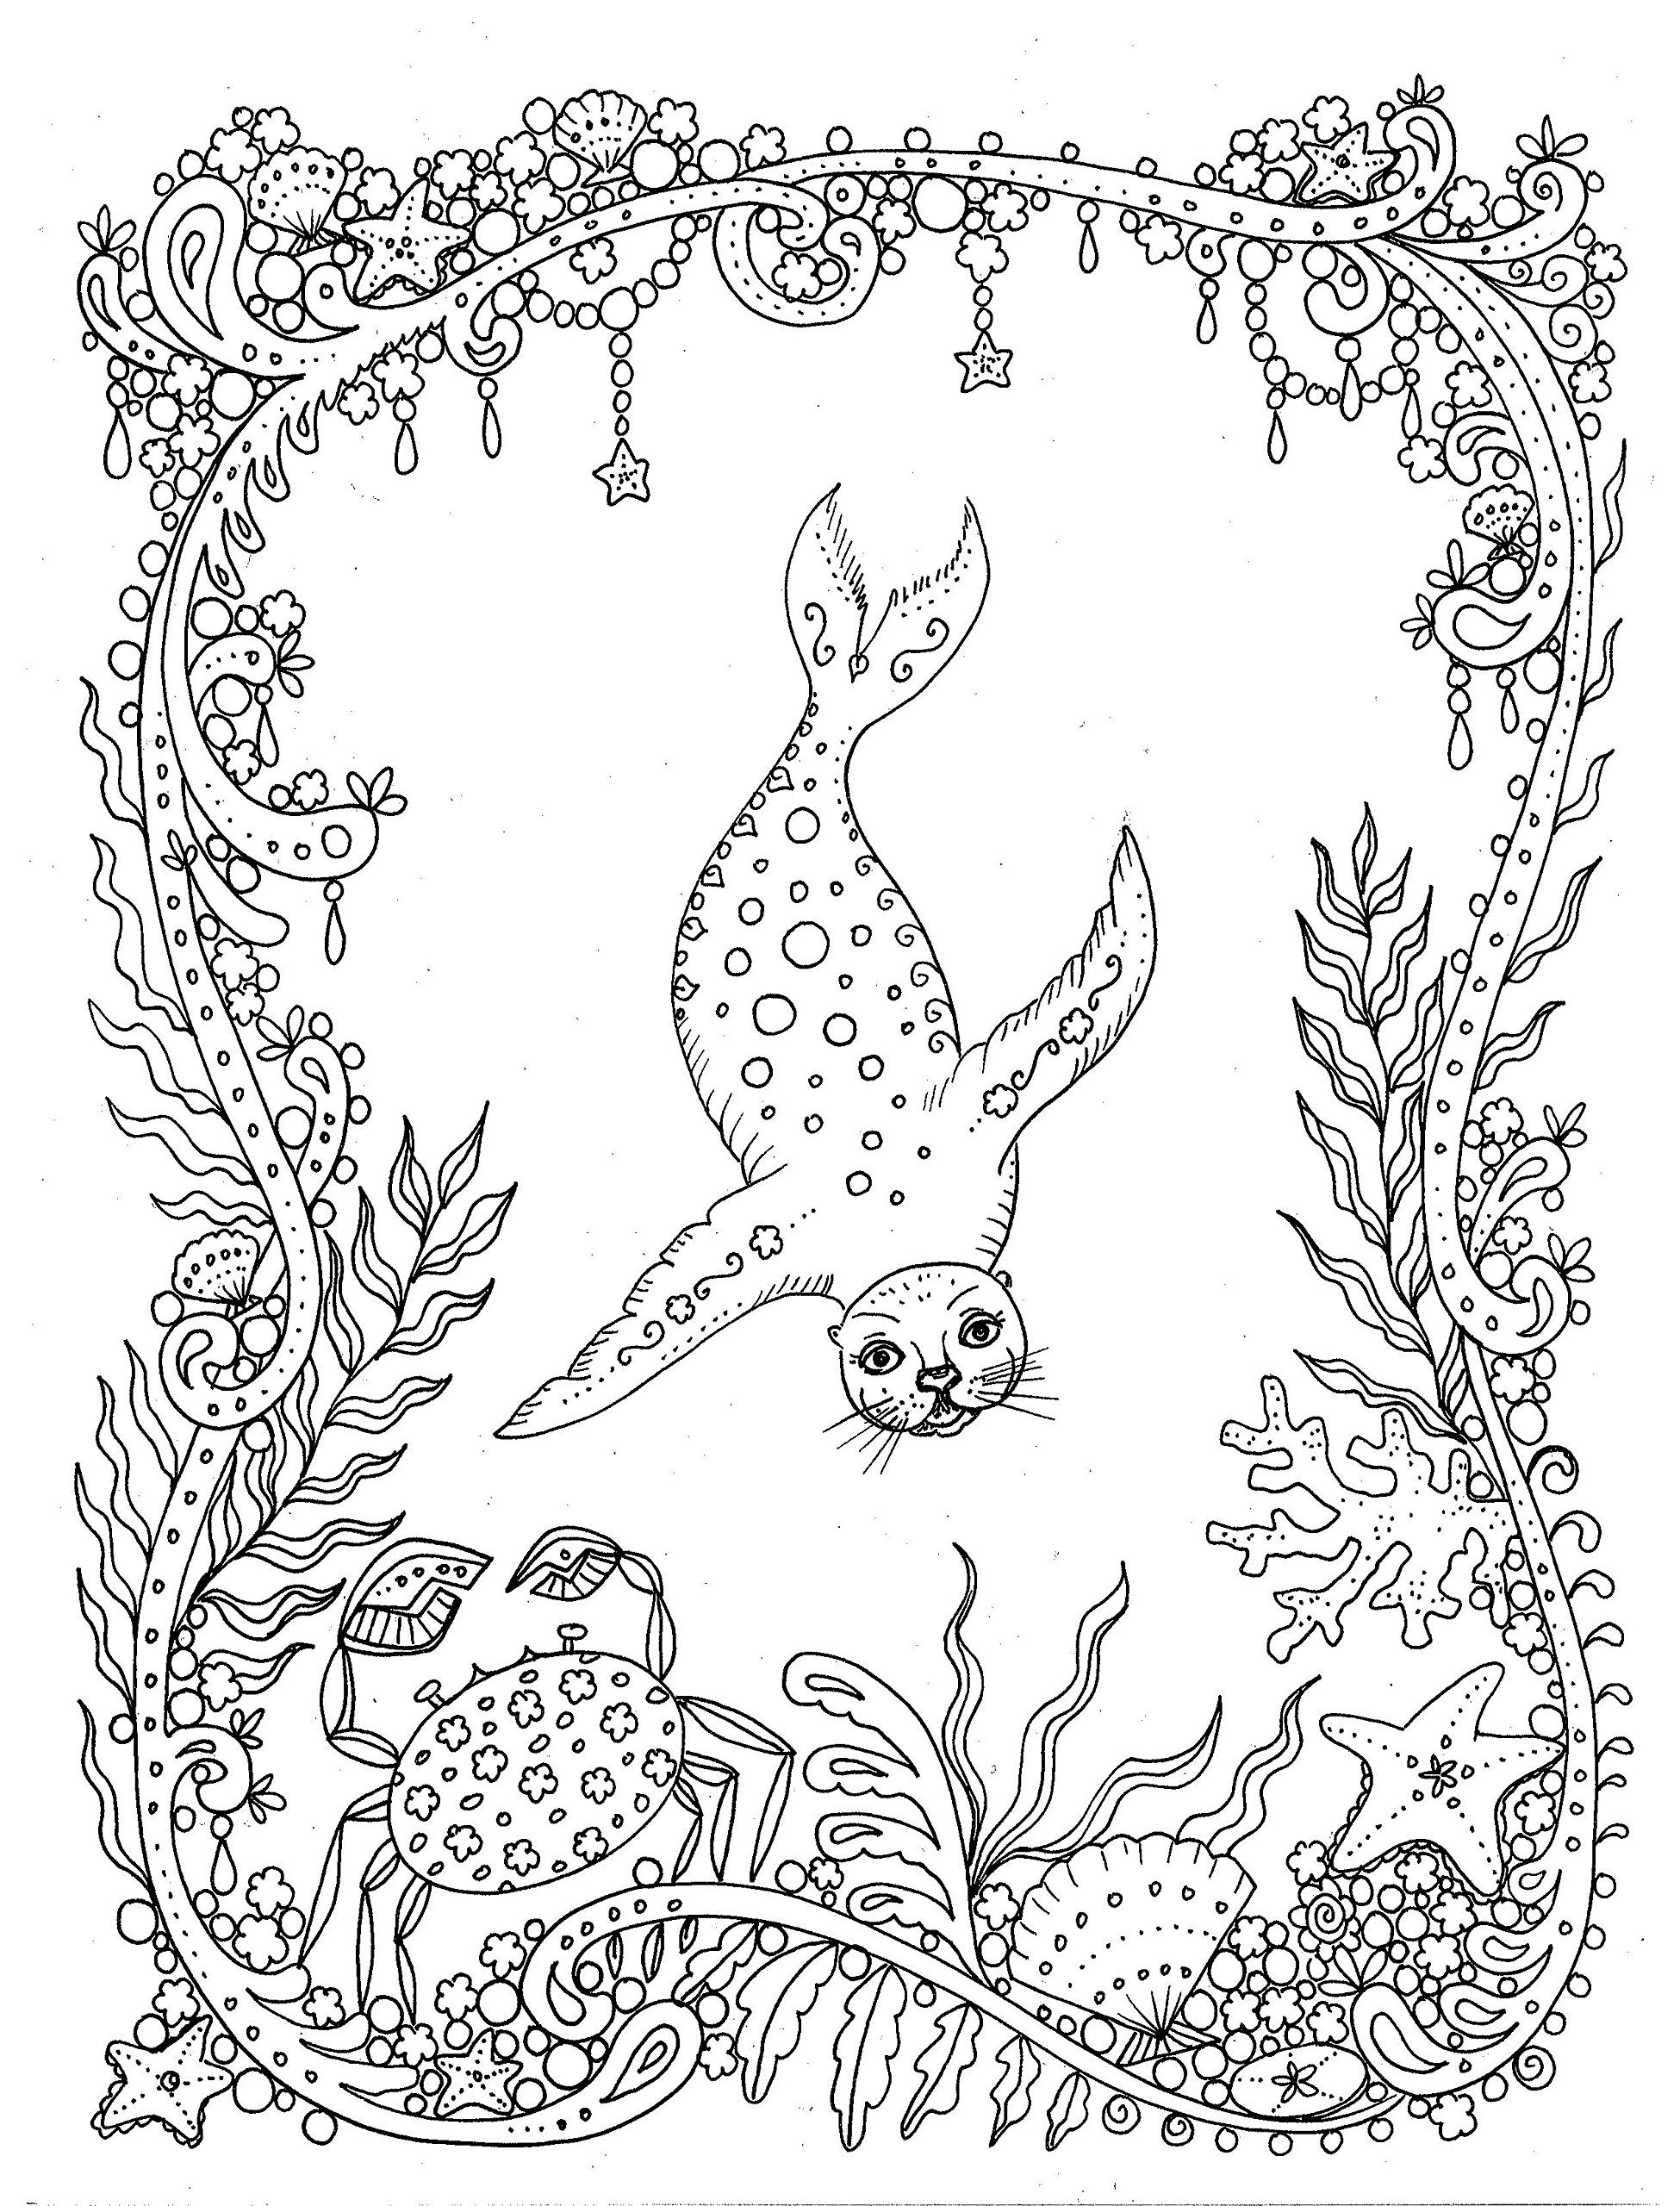 Seal Under The Sea Fantasy Art Adult Coloring Book You Be The